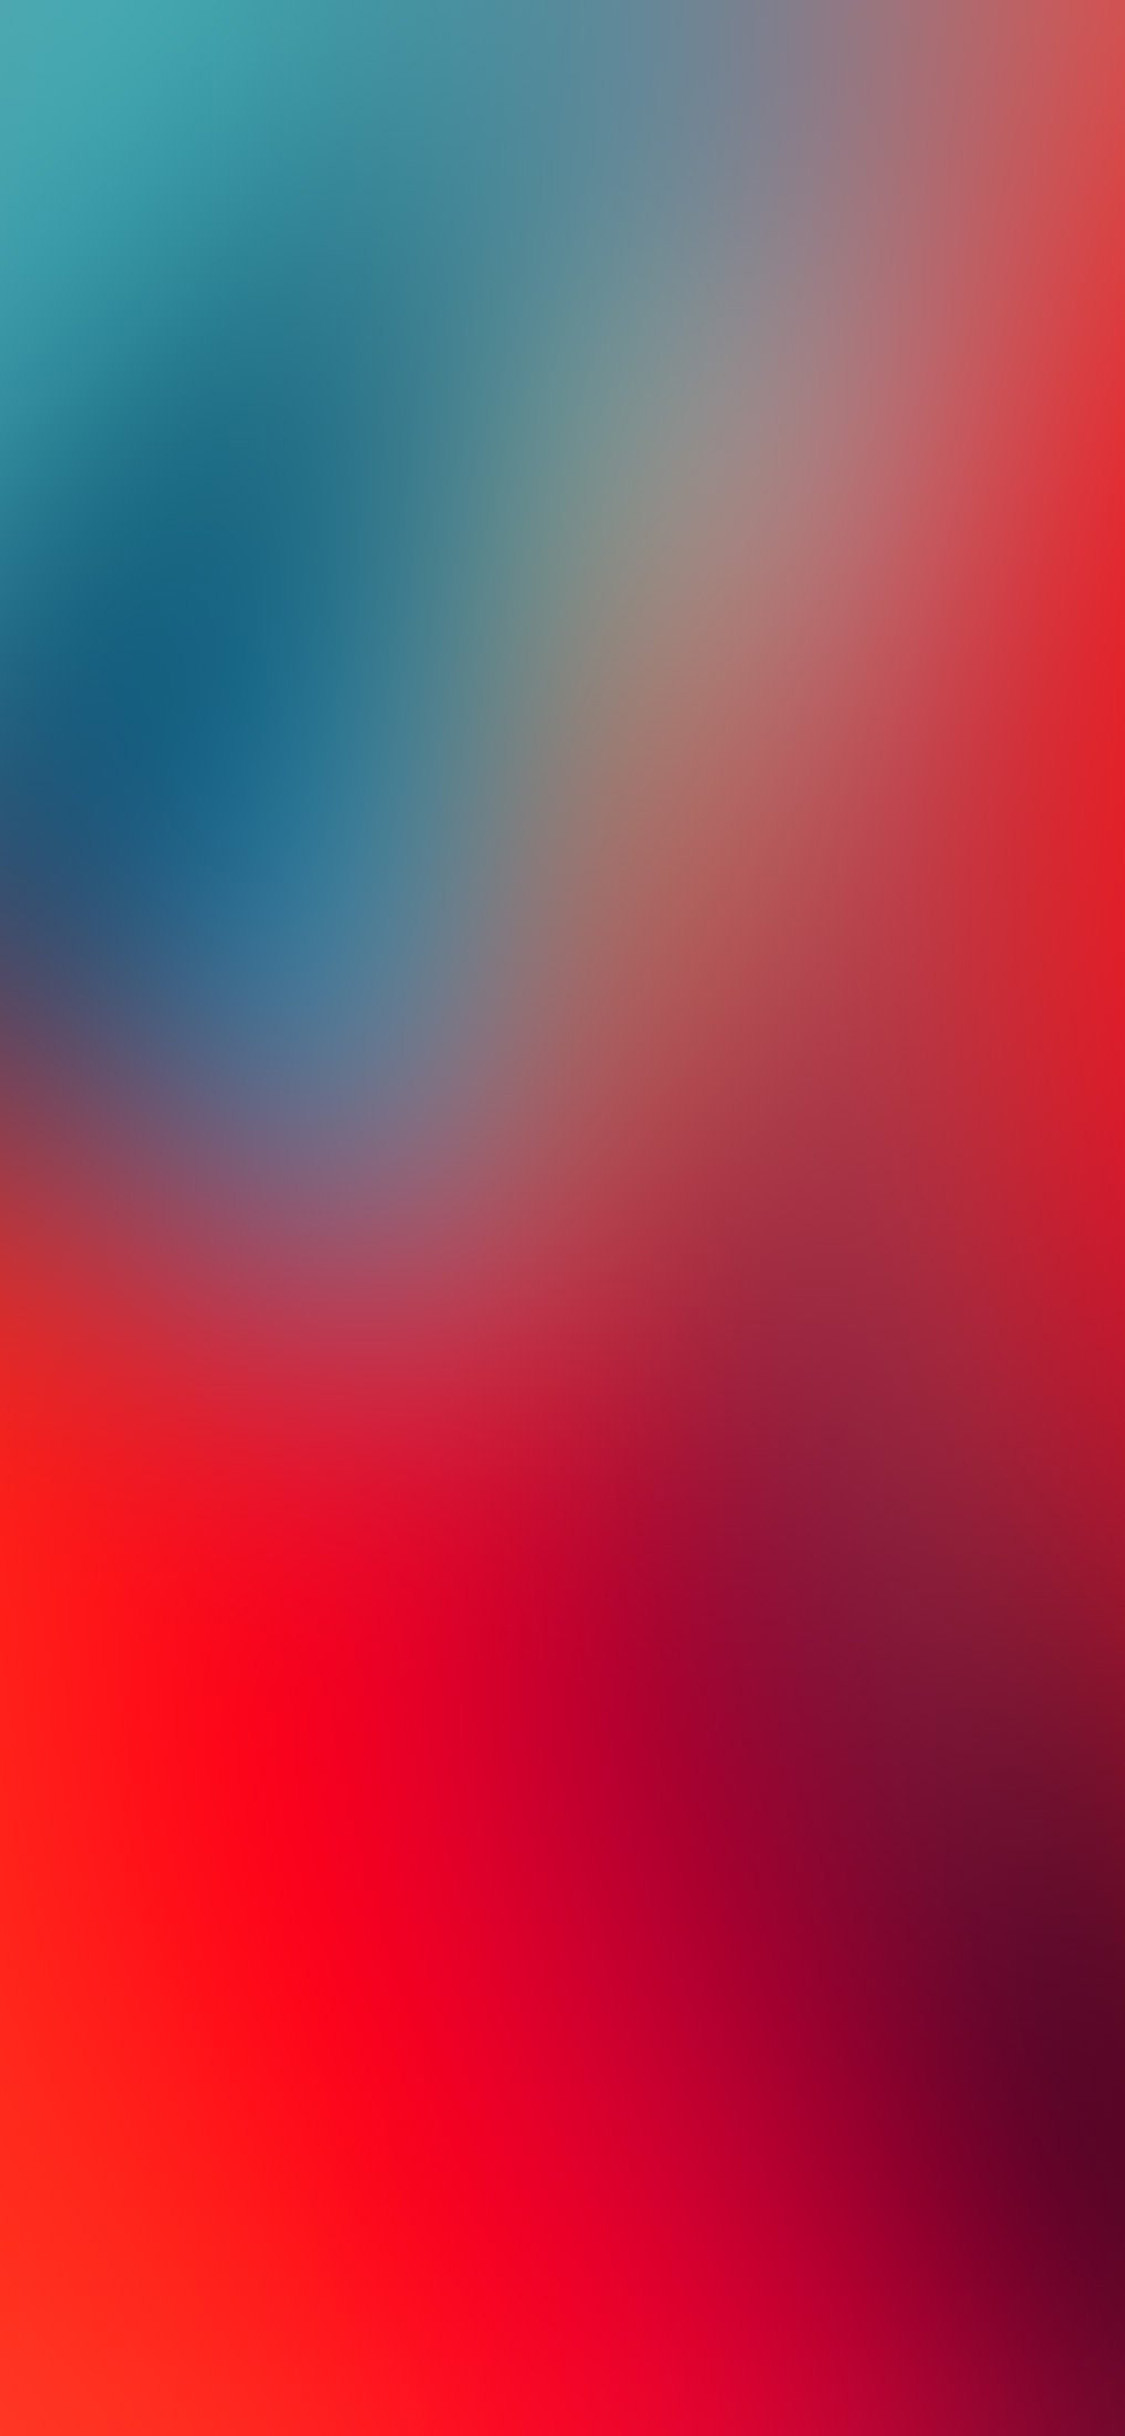 Wallpaper For Iphone X Posted By Ryan Walker